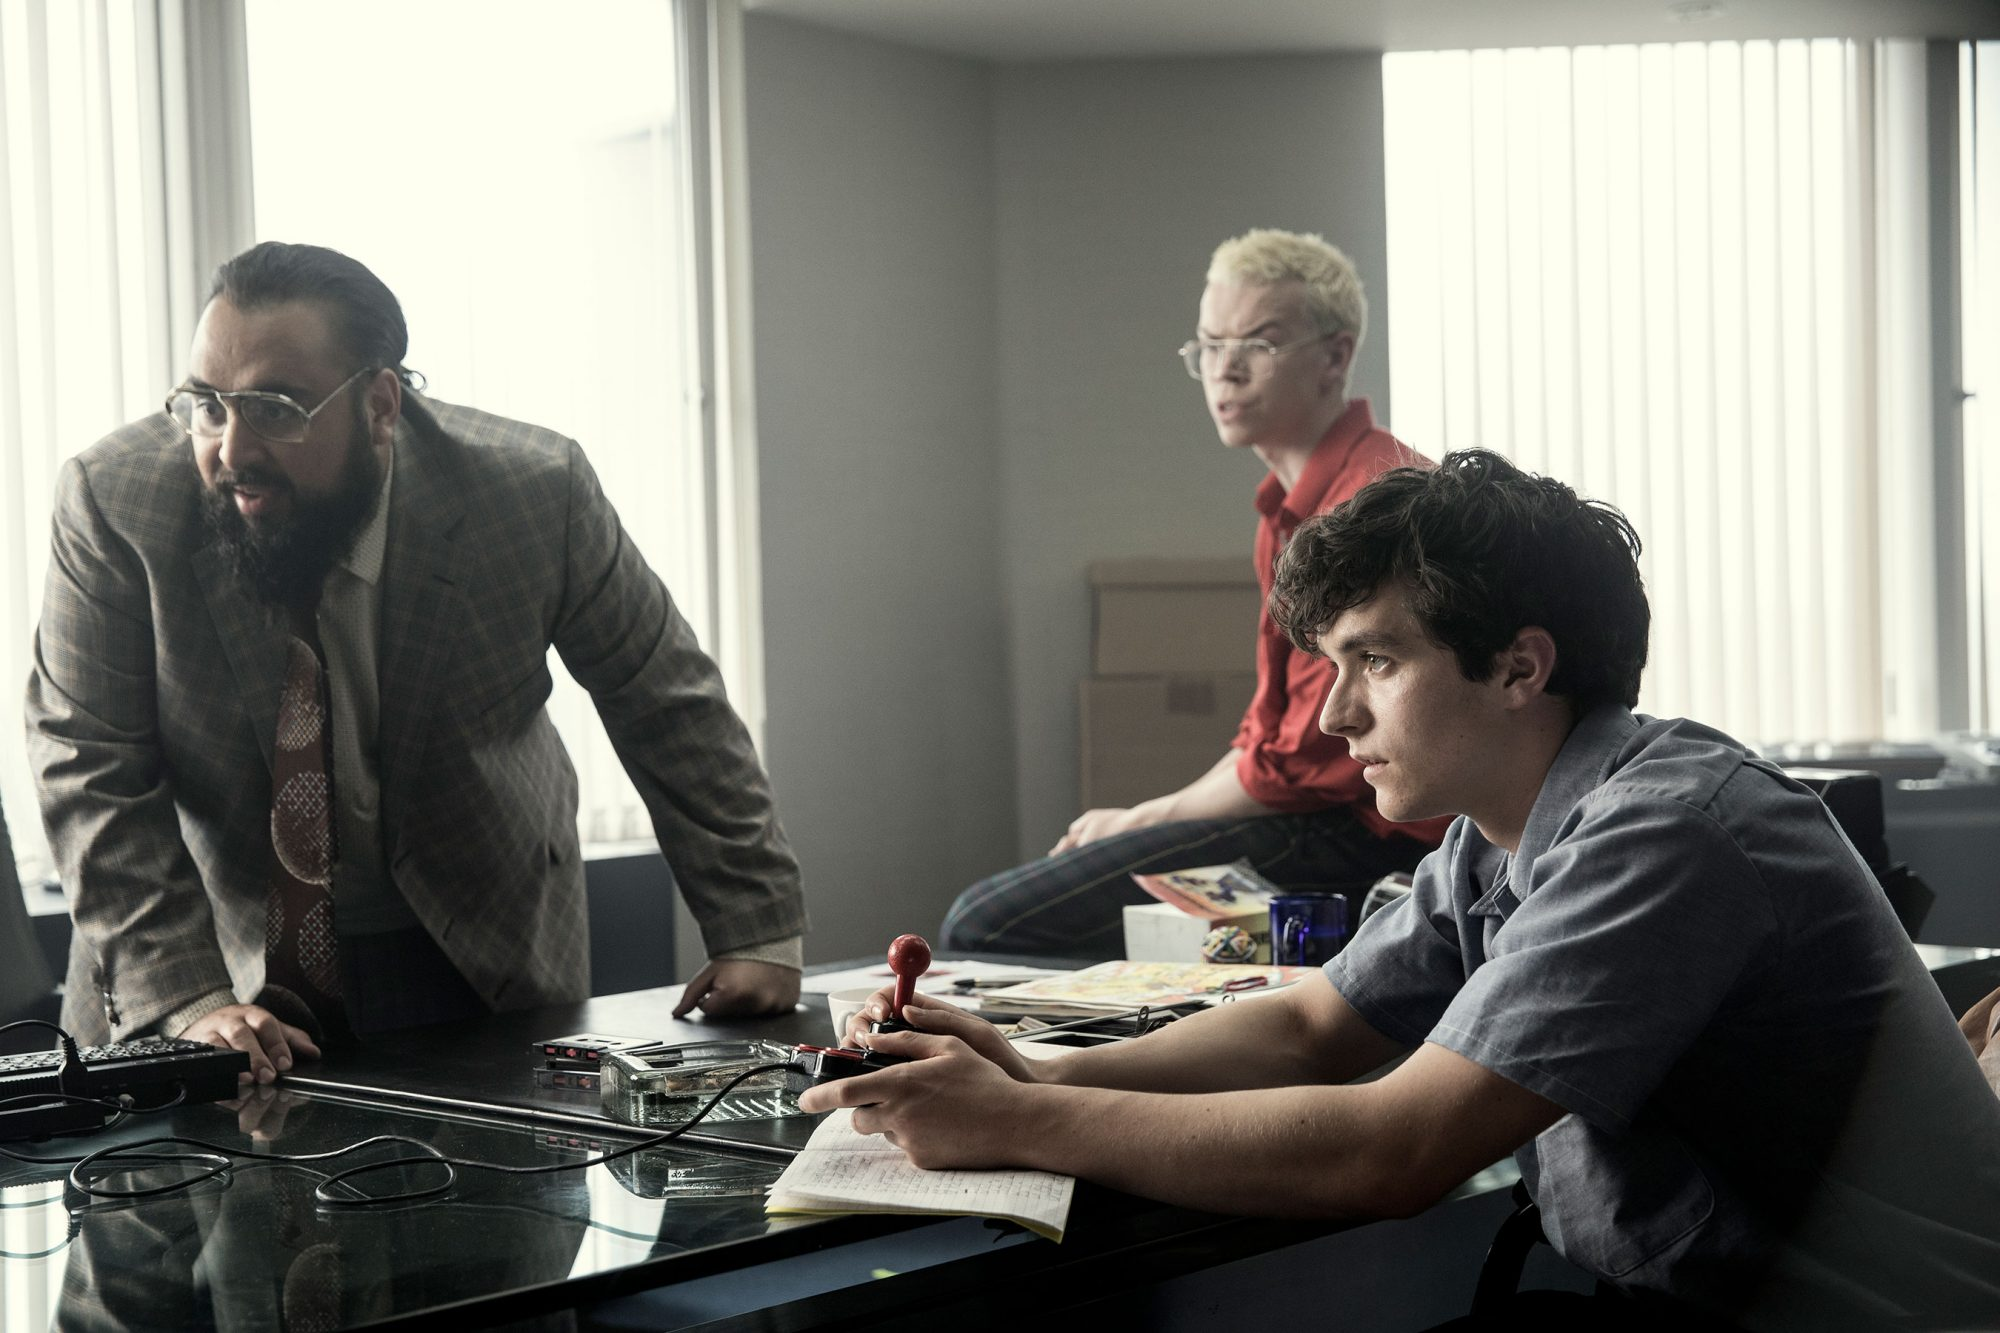 No. 14: 'Bandersnatch' (2018 Film)